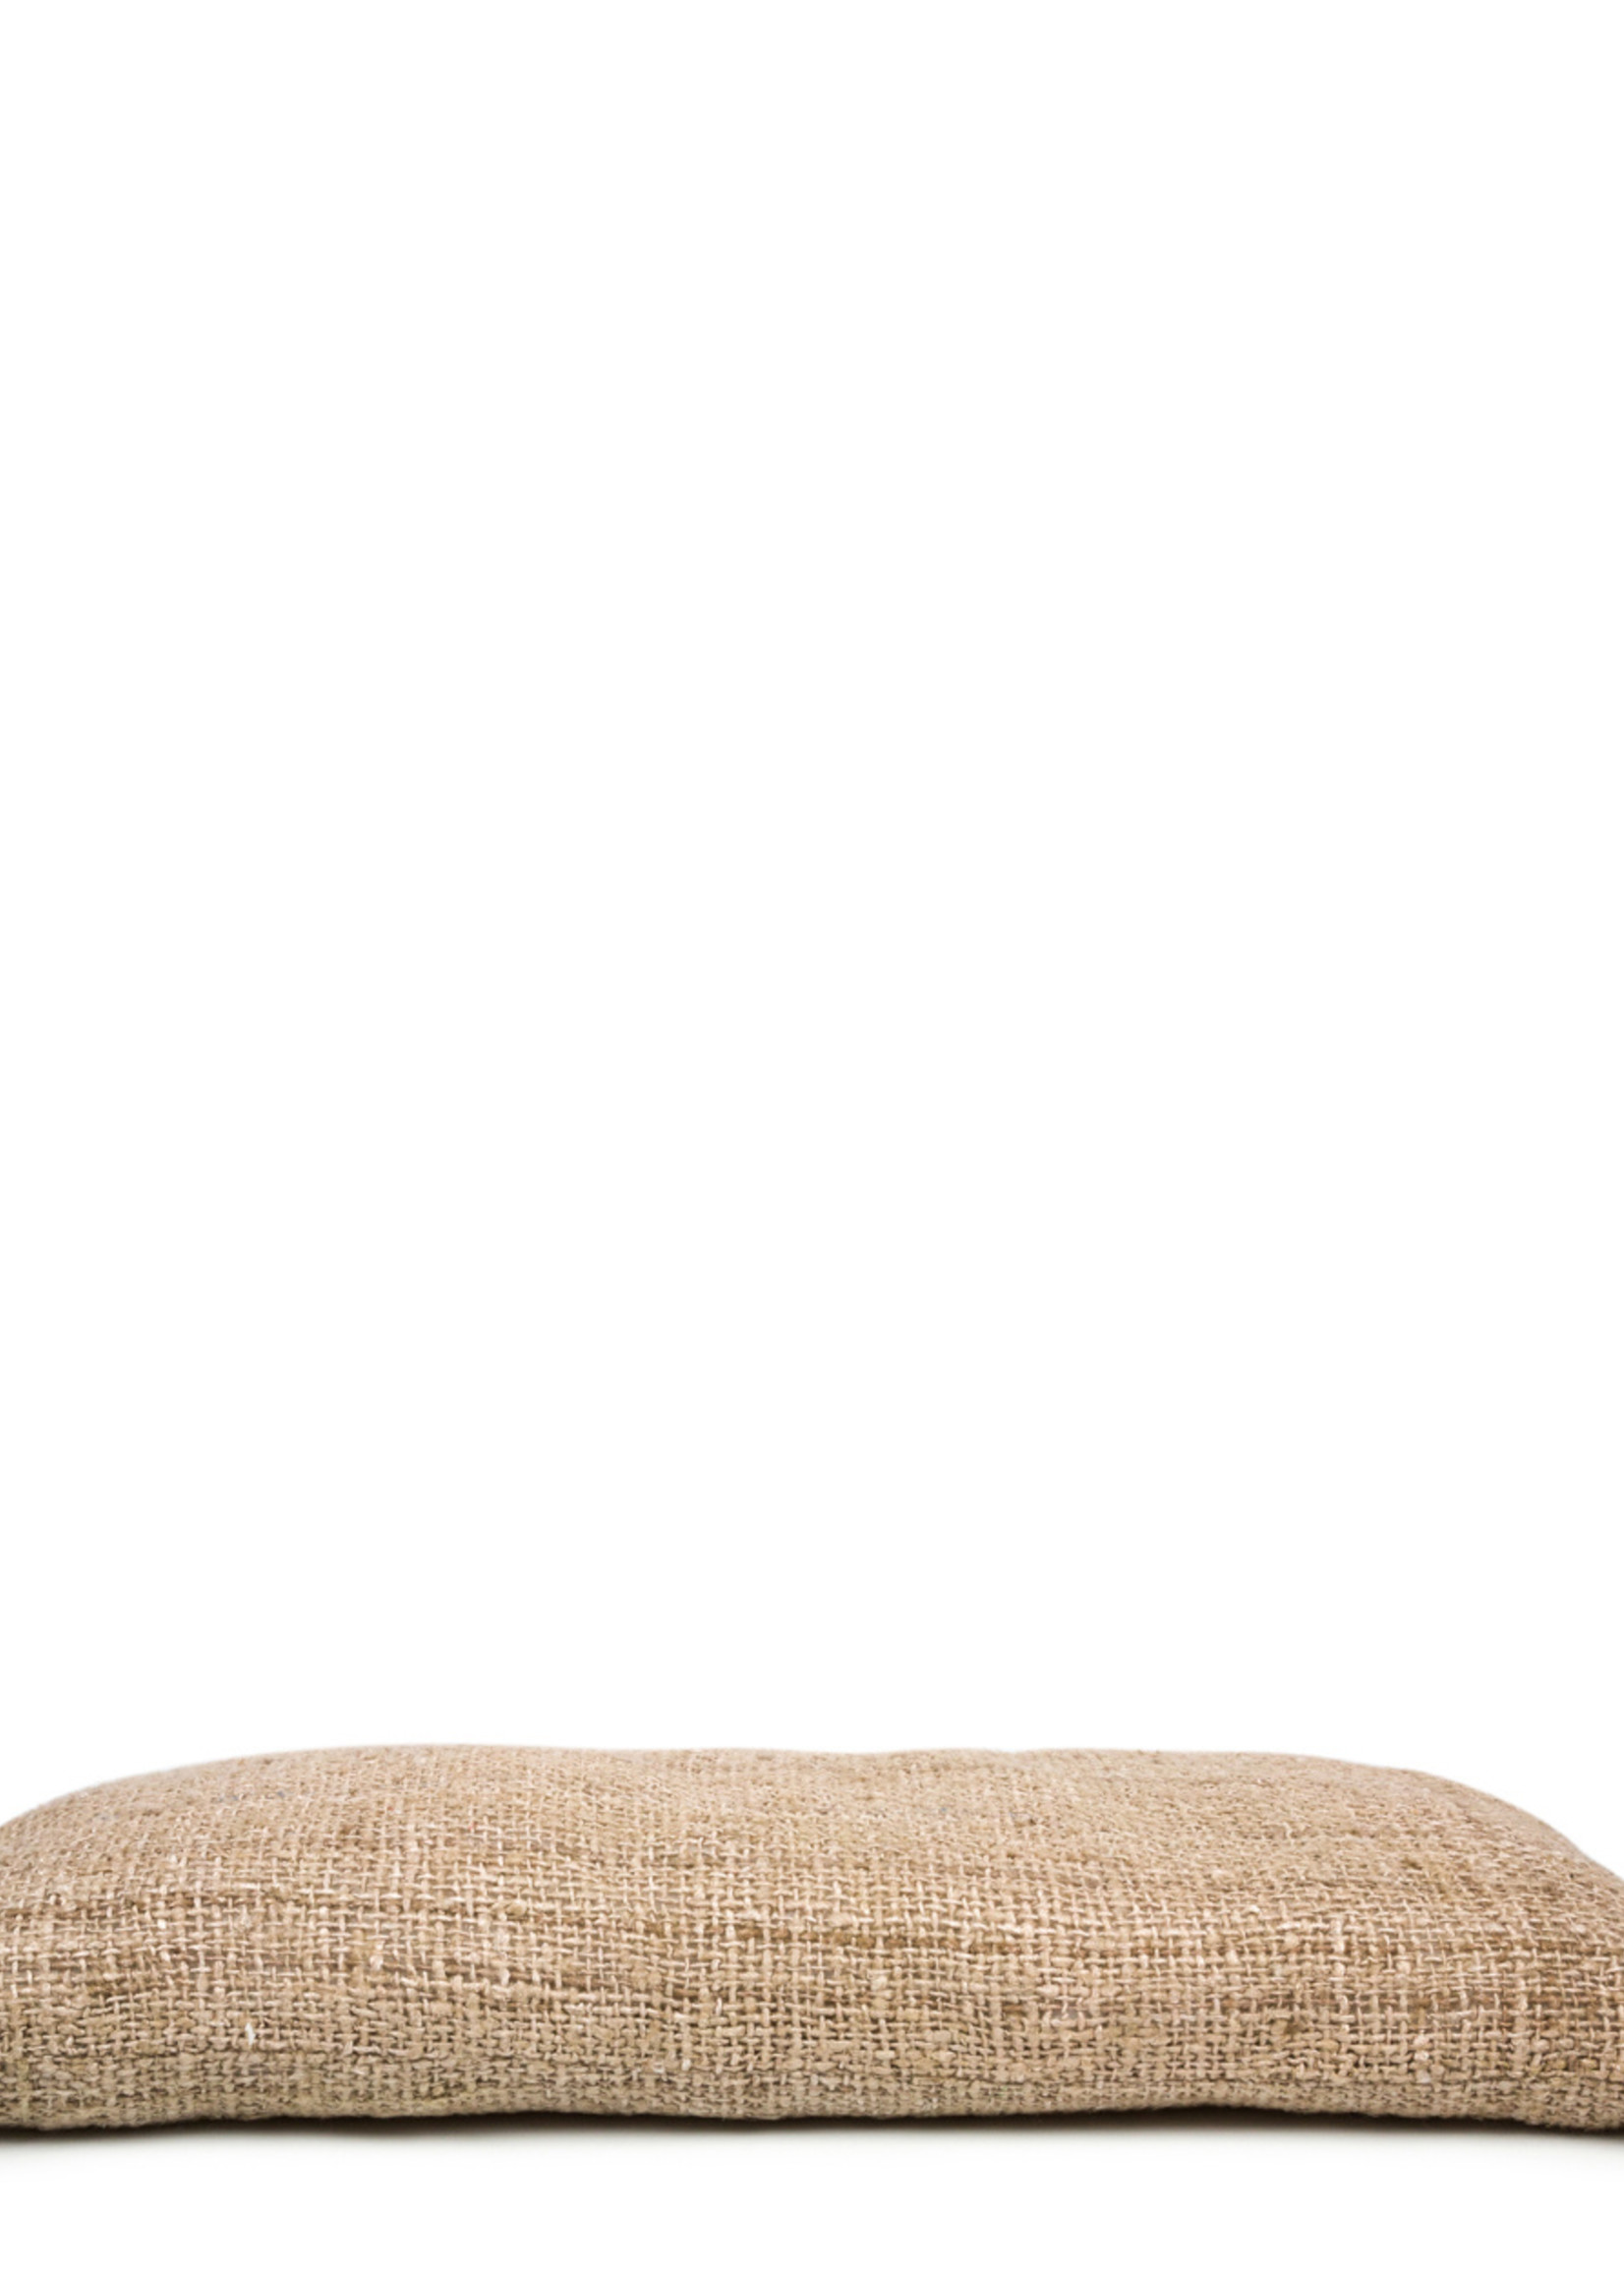 The Oh My Gee Cushion - Beige